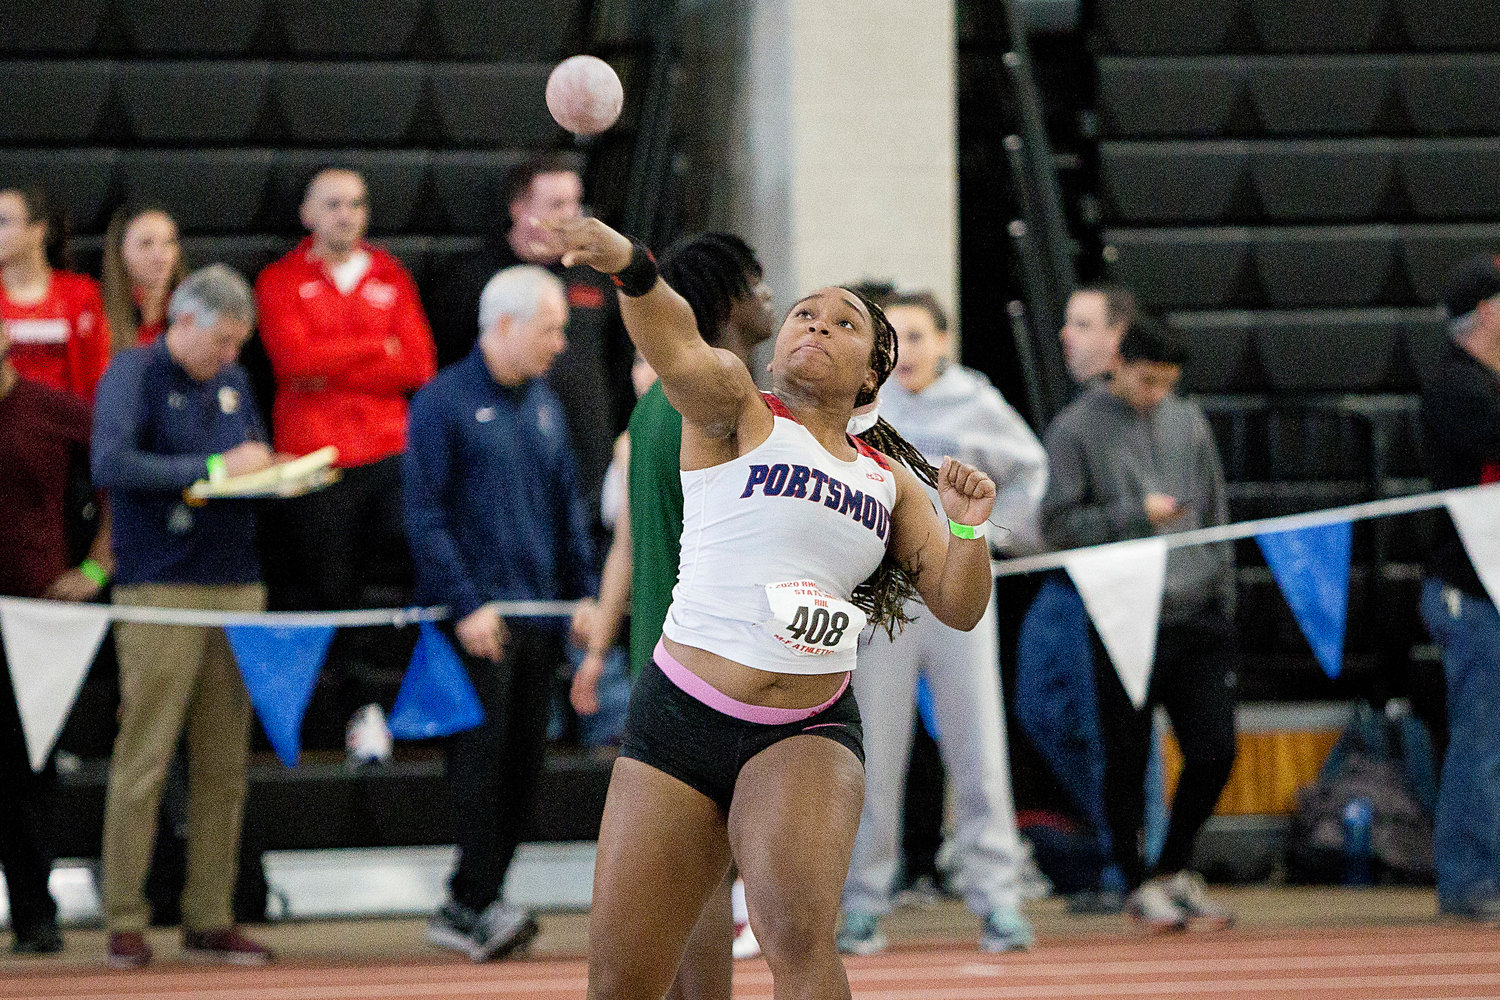 Portsmouth High School's Gabby Bryan gives her best effort while competing in the girls' shot put event at the state indoor track and field championship meet at the Providence Career & Technical Academy on Saturday. Her best toss was 35 feet, 4.5 inches — good enough for fourth place, which was the highest finish among her team members.